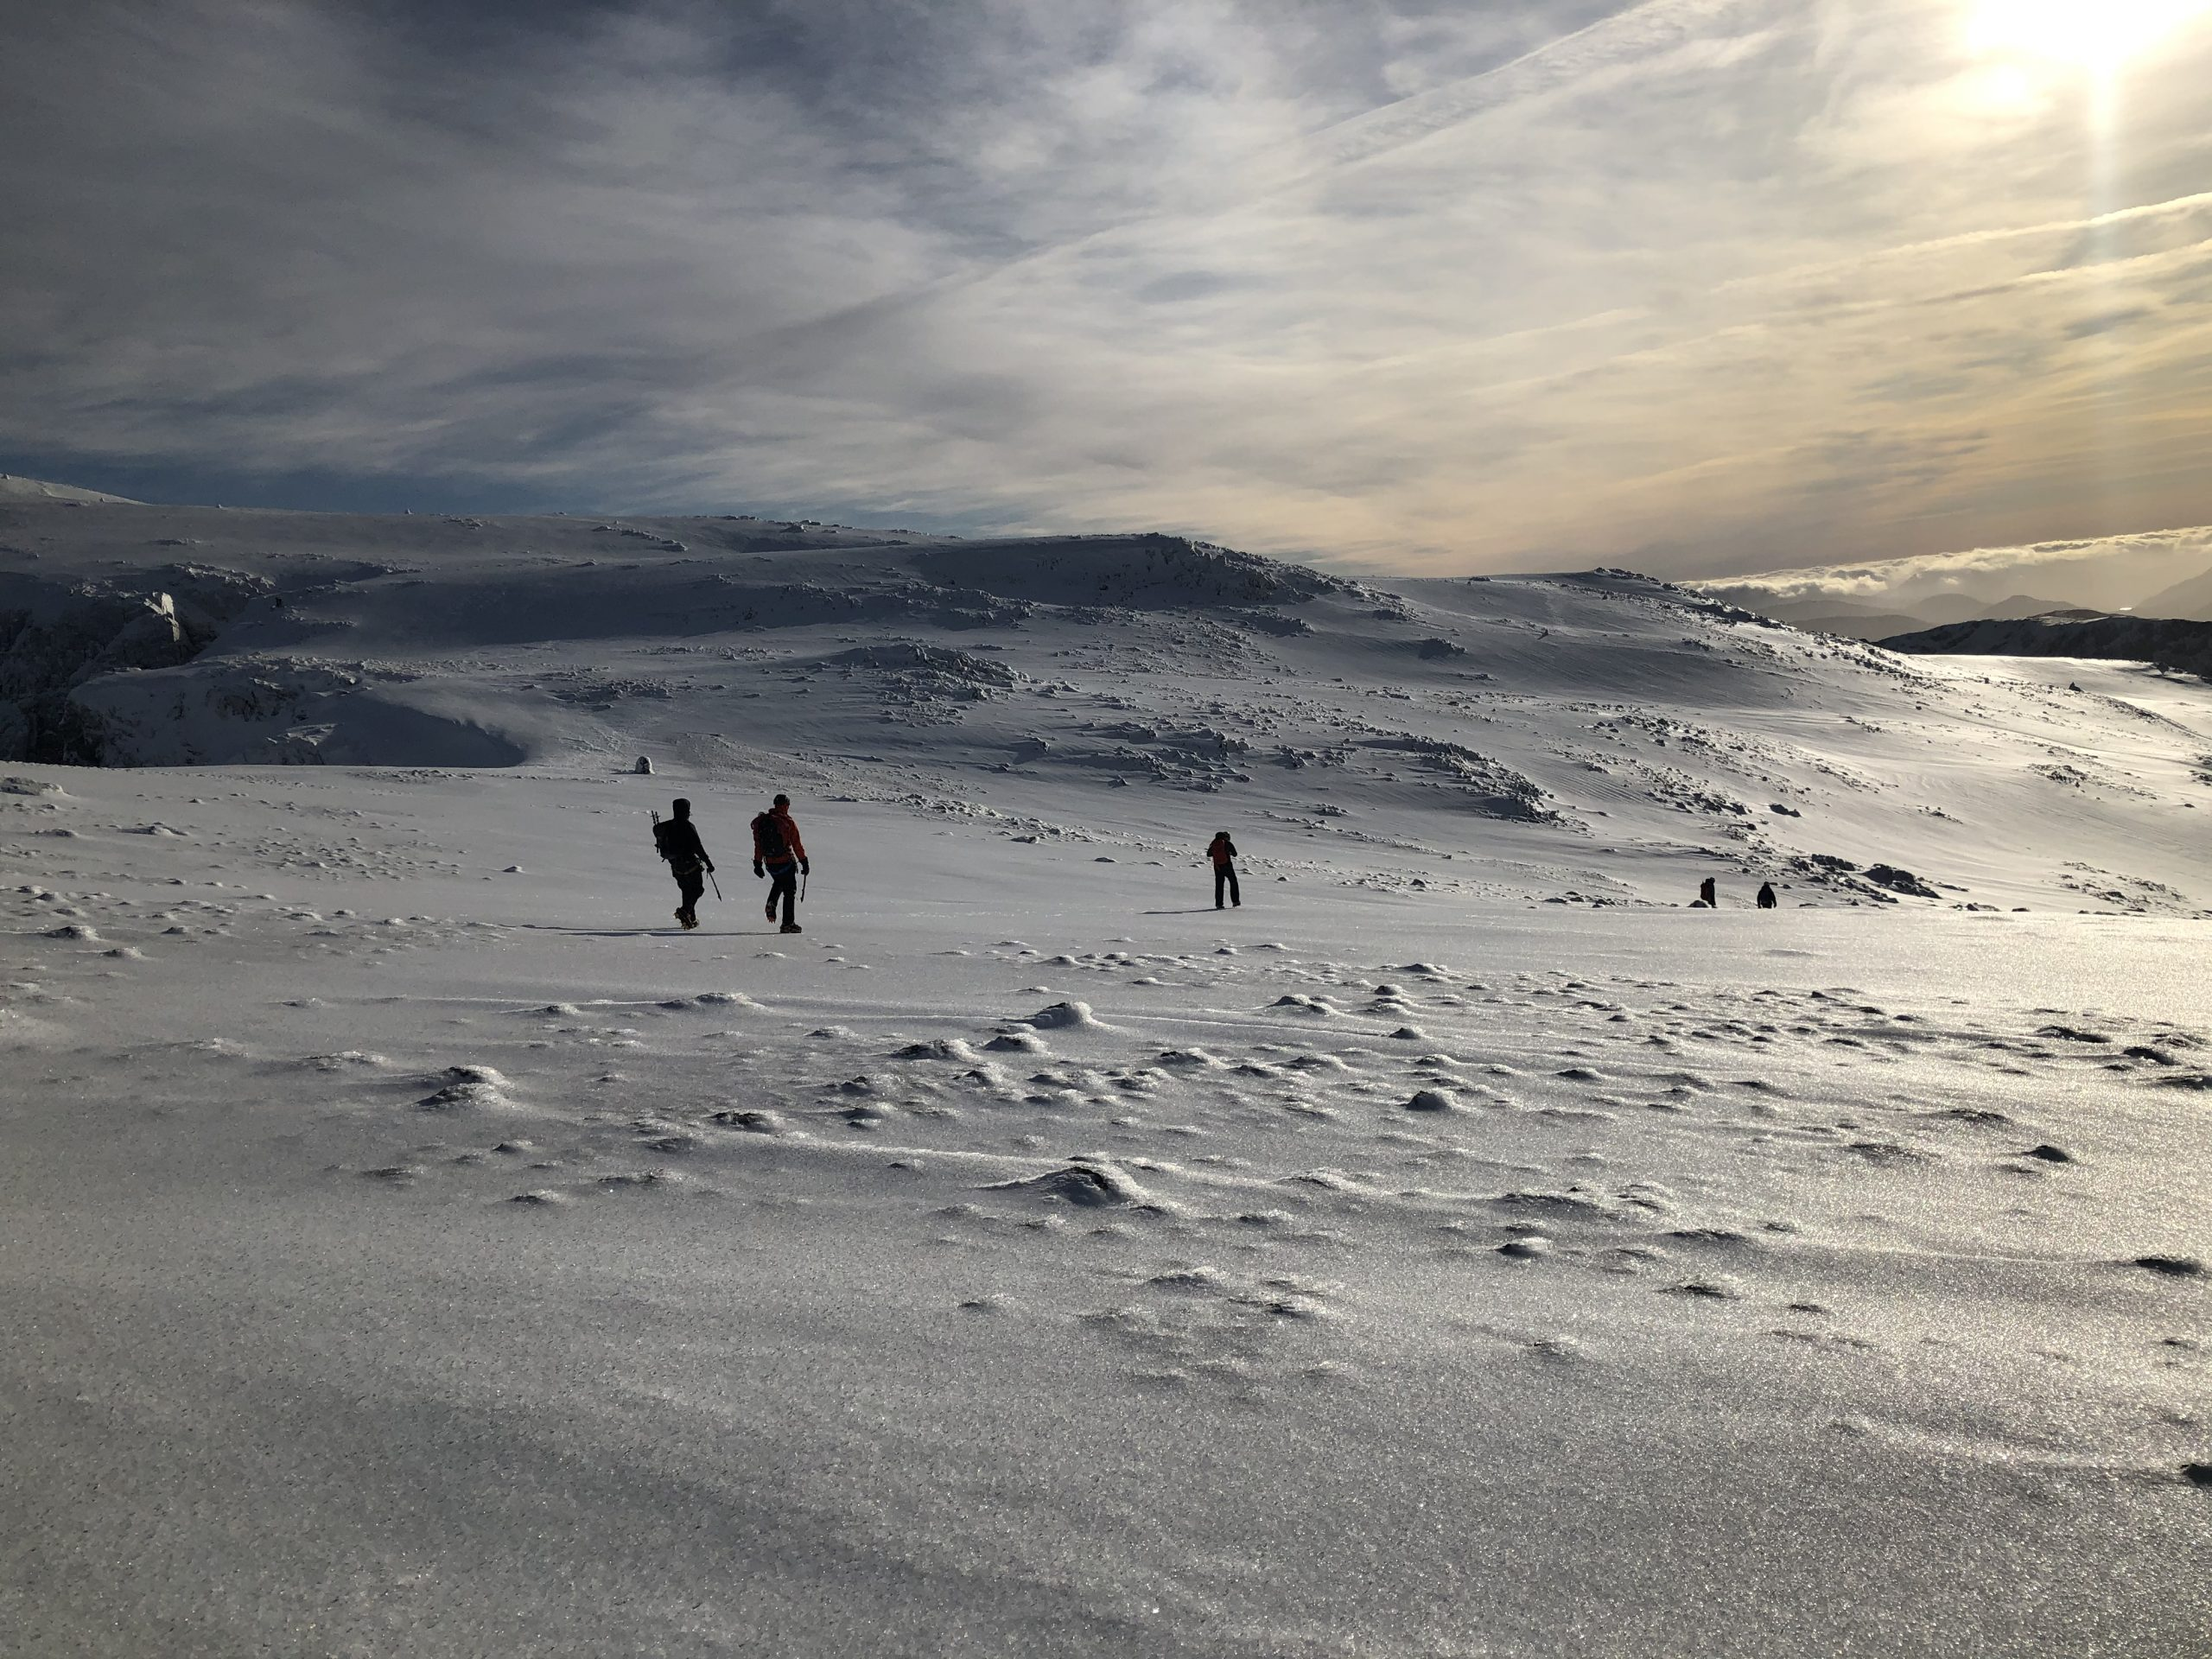 Descending the plateau of Ben Nevis in winter after climbing Ledge Route on a winter mountaineering course